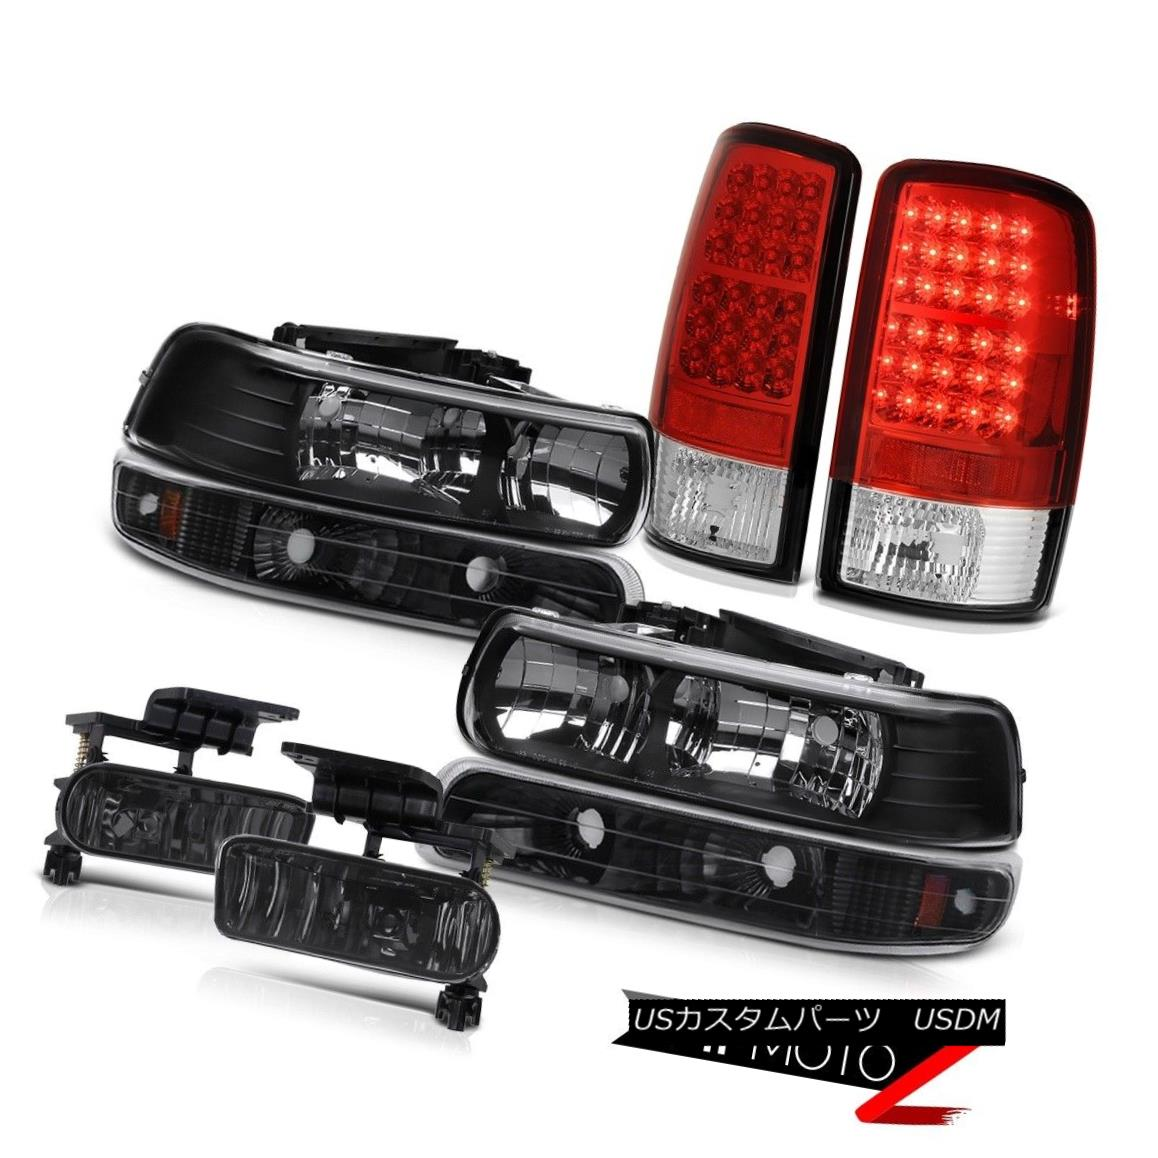 ヘッドライト Black Headlight Bright L.E.D Taillamps Dark Smoke Fog 2000-2006 Suburban 1500 黒いヘッドライト明るいL.E.D Taillamps暗い煙霧2000-2006郊外1500